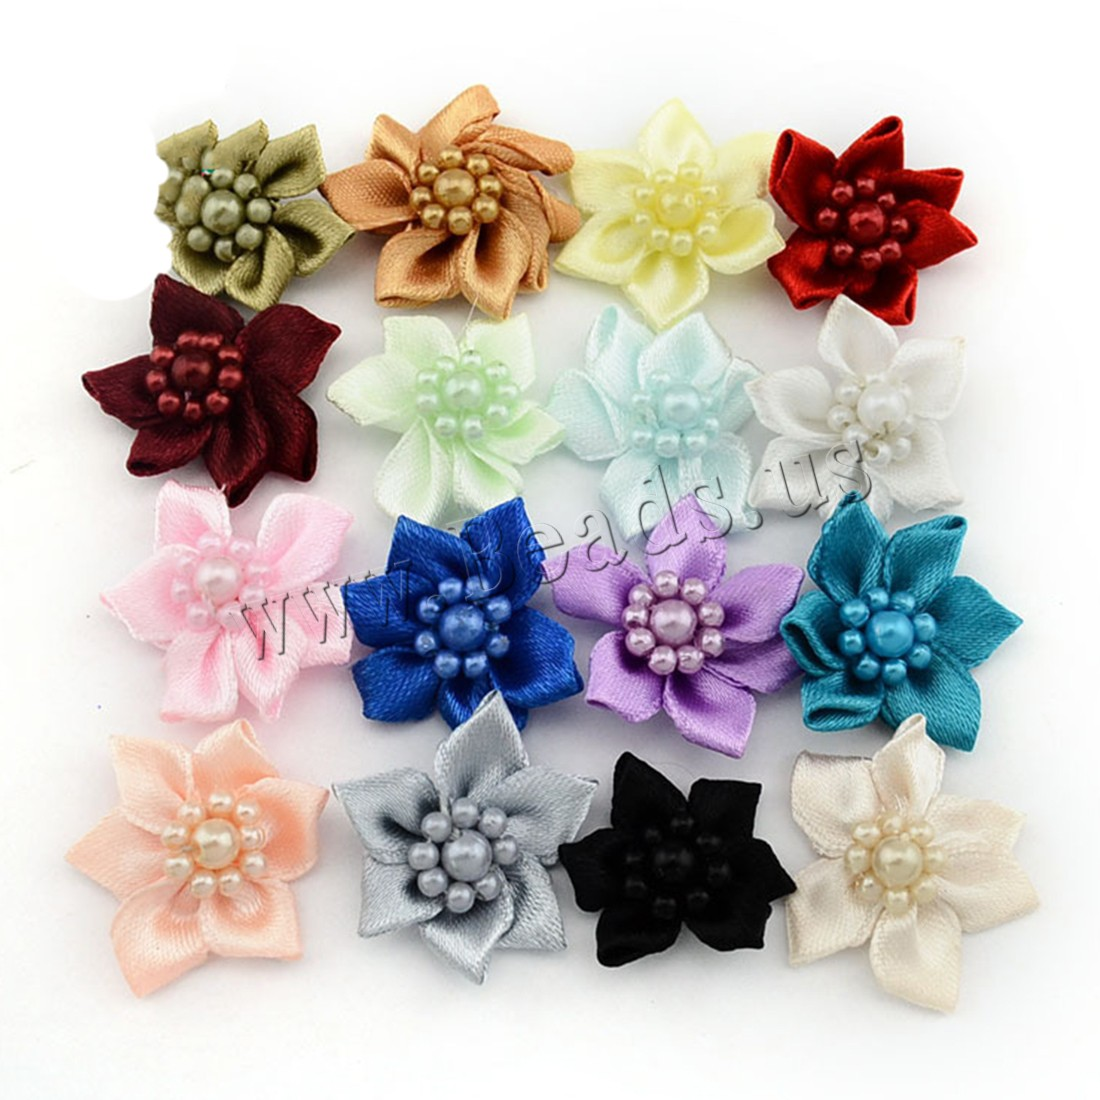 Buy Fashion Decoration Flowers Satin Ribbon Plastic Pearl children mixed colors 30mm 200PCs/Bag Sold Bag